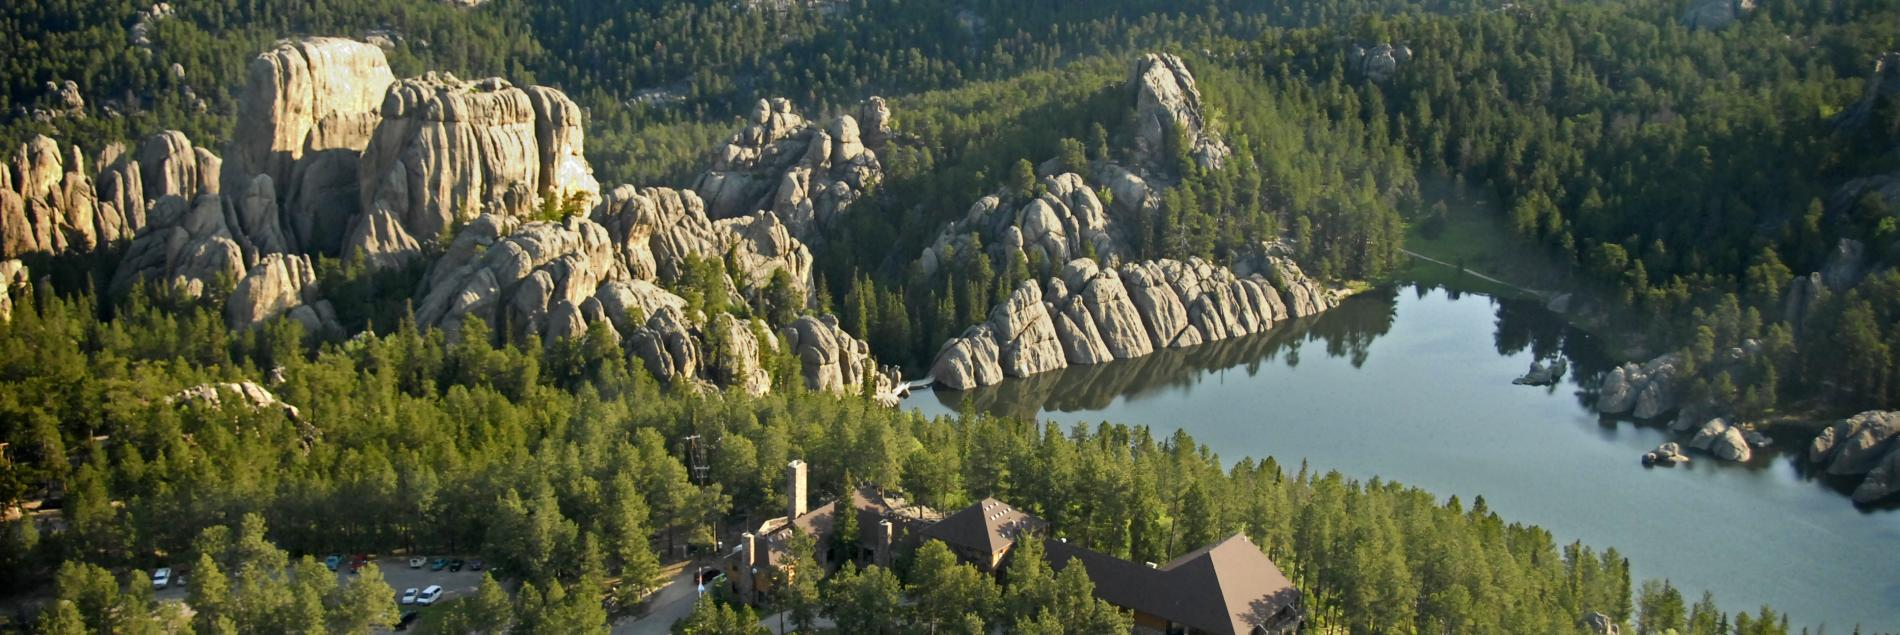 Sylvan Lake Lodge at Custer State Park Resort